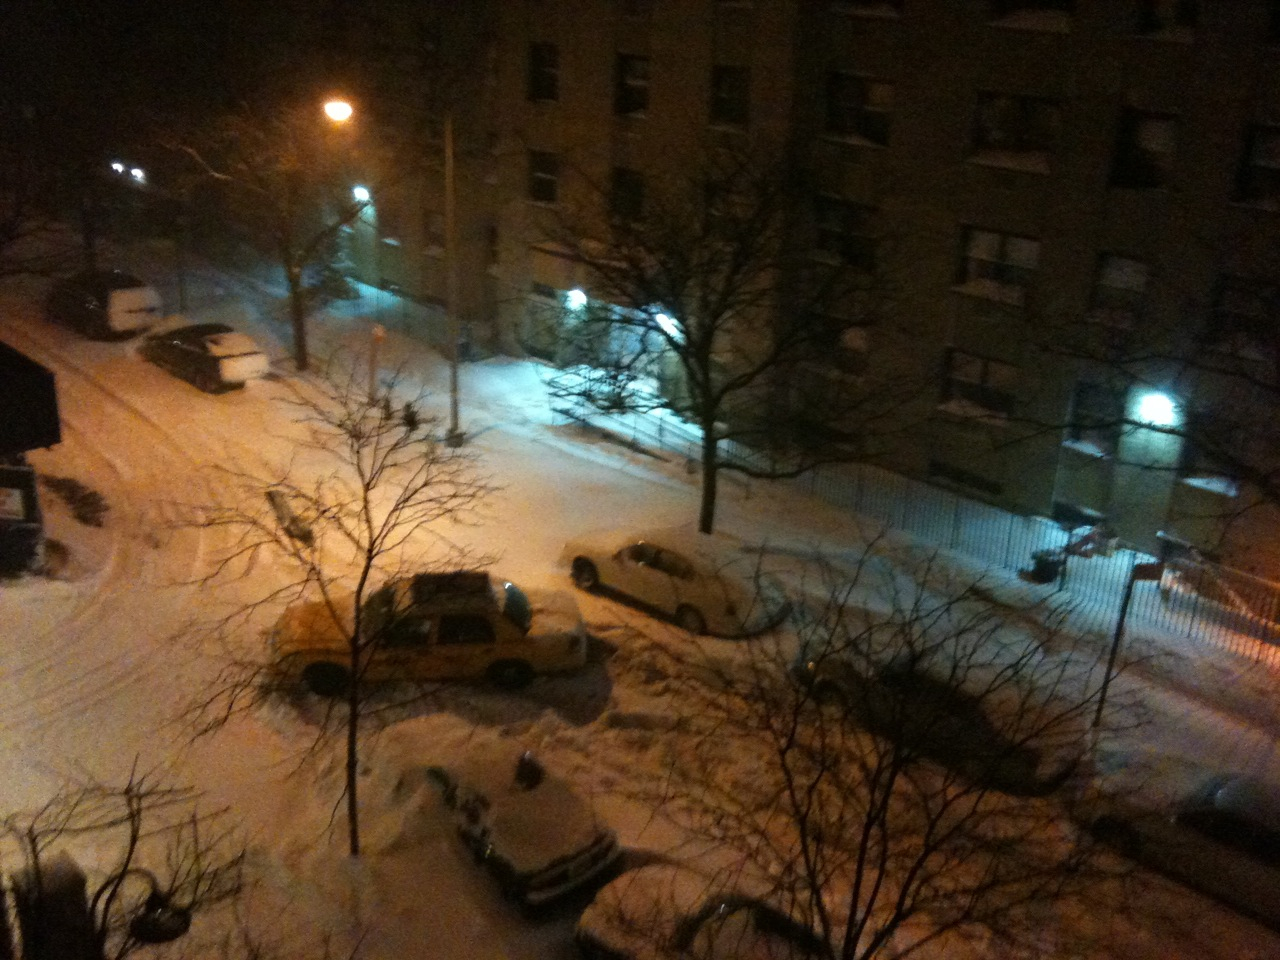 NYC Taxi Stuck in Holiday Blizzard